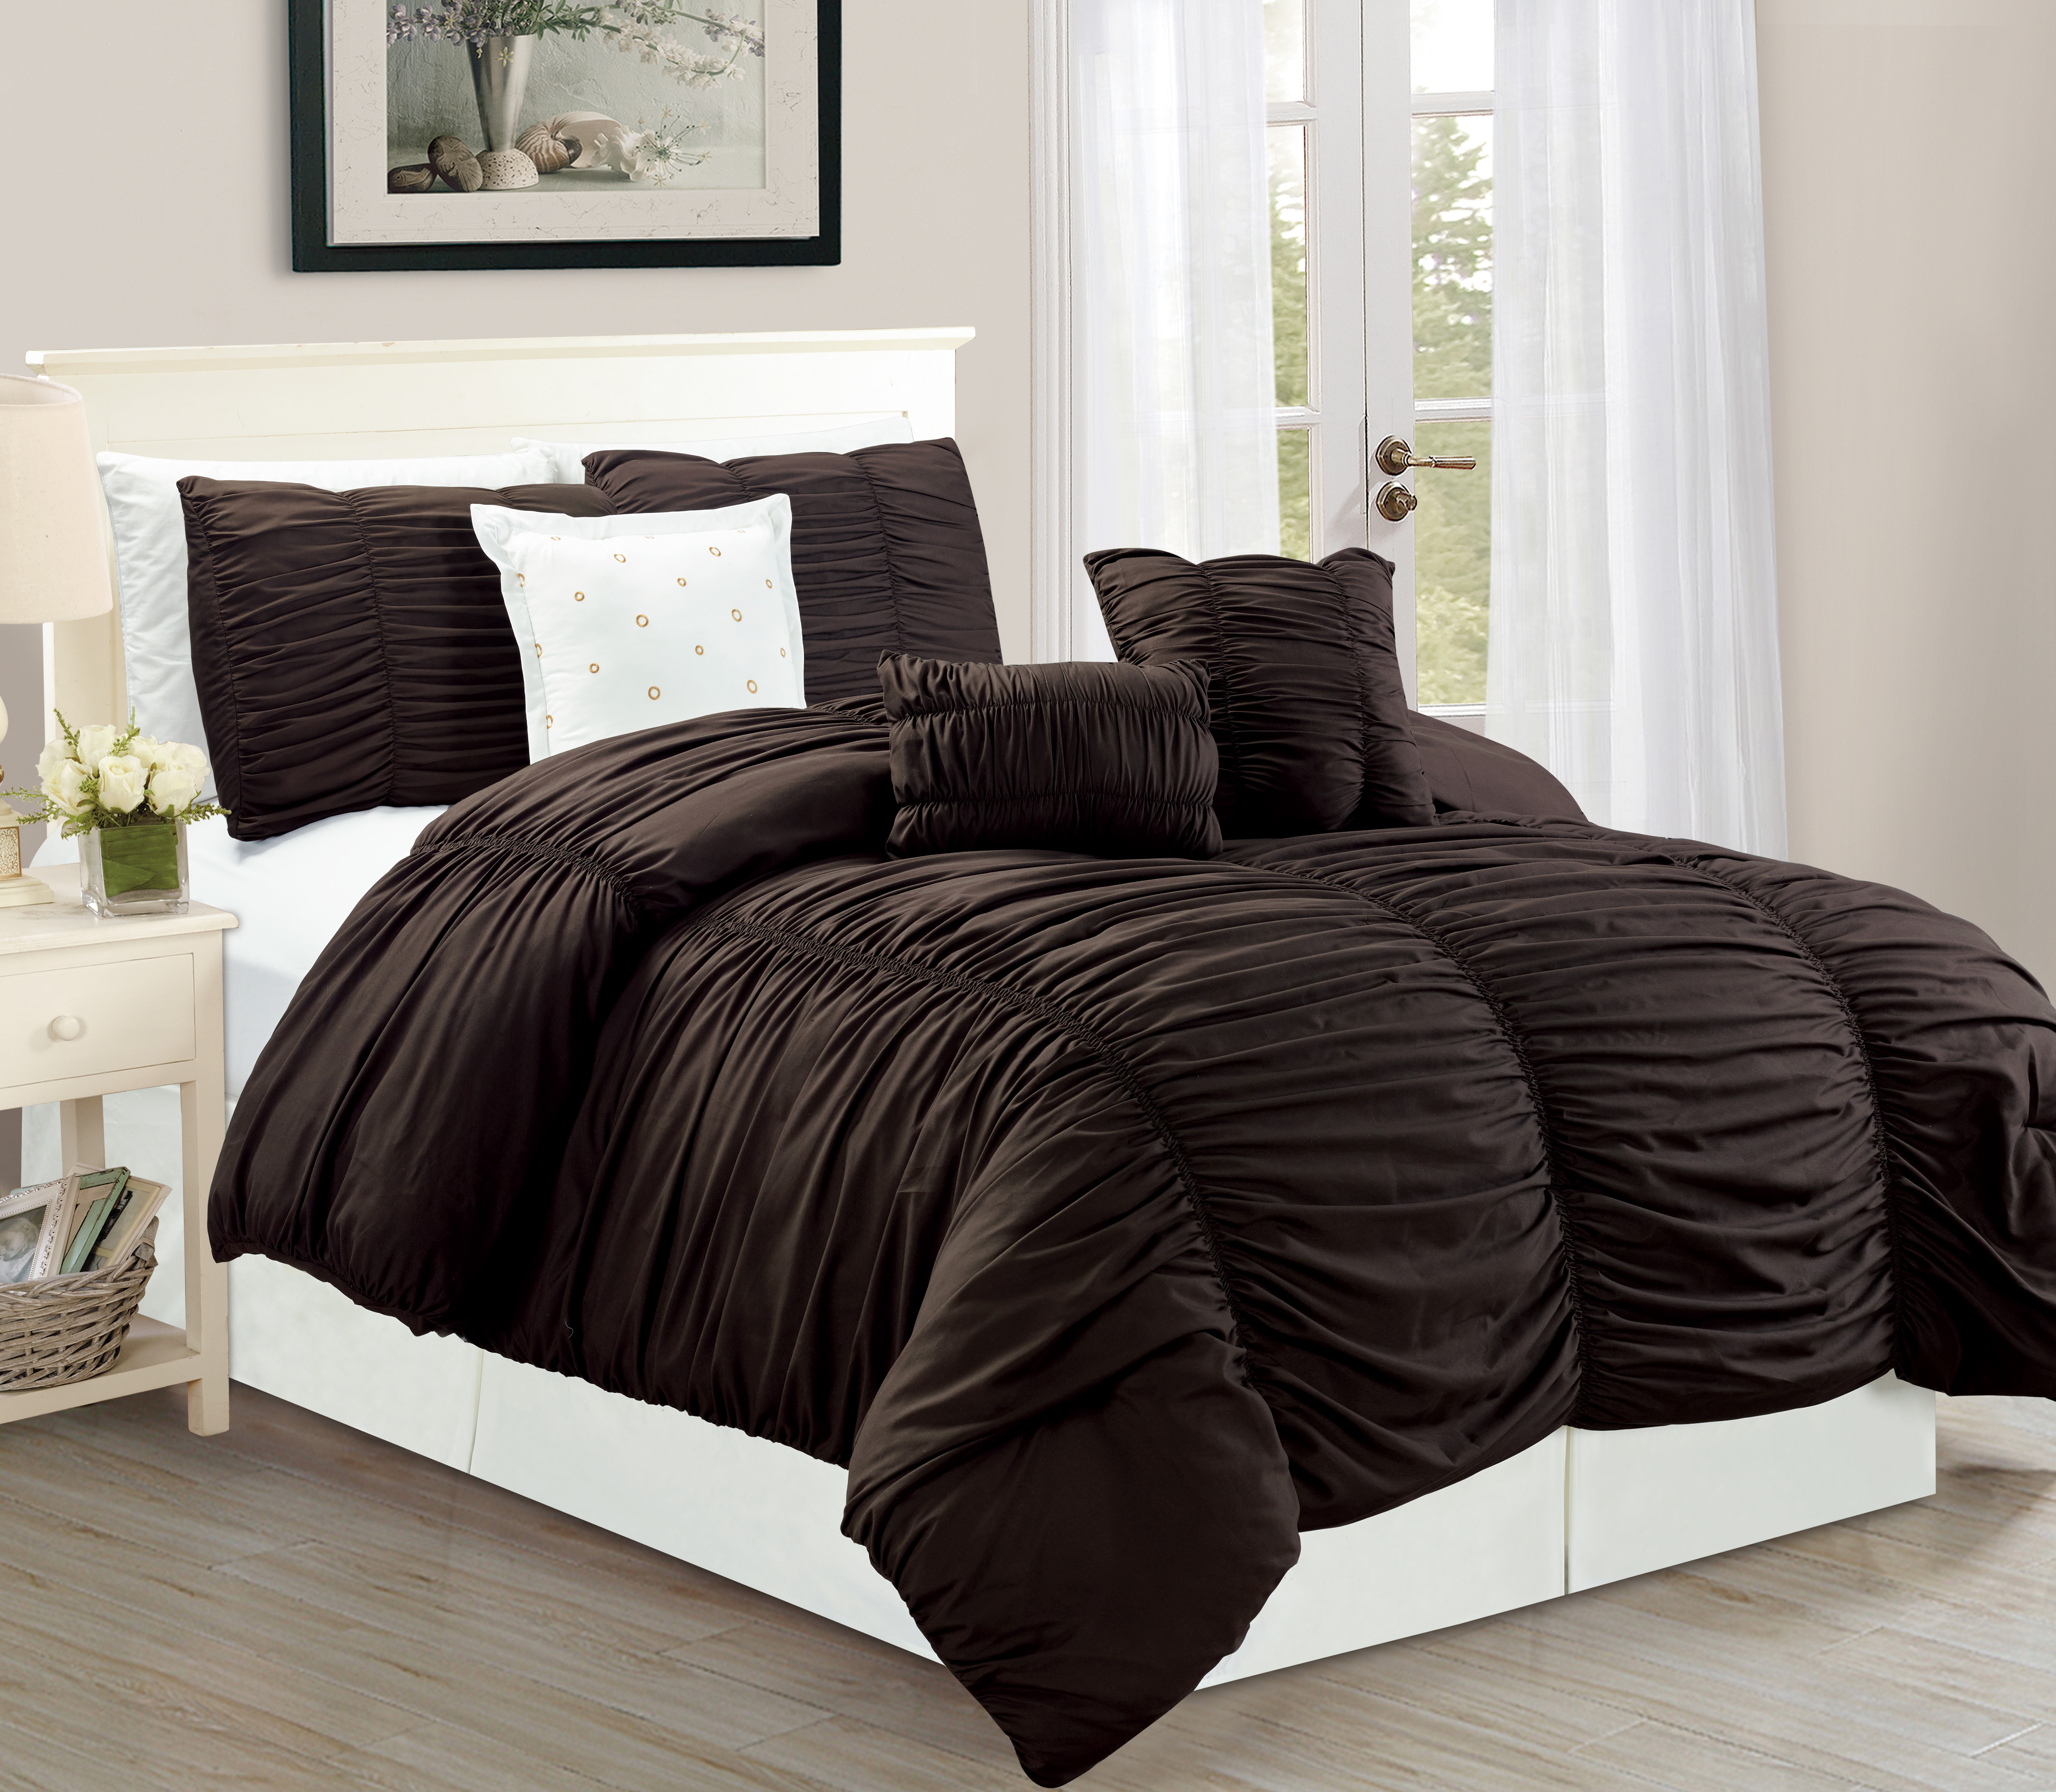 wpm 7 piece royal chocolate brown ruched comforter set elegant bed in a bag luxurious king